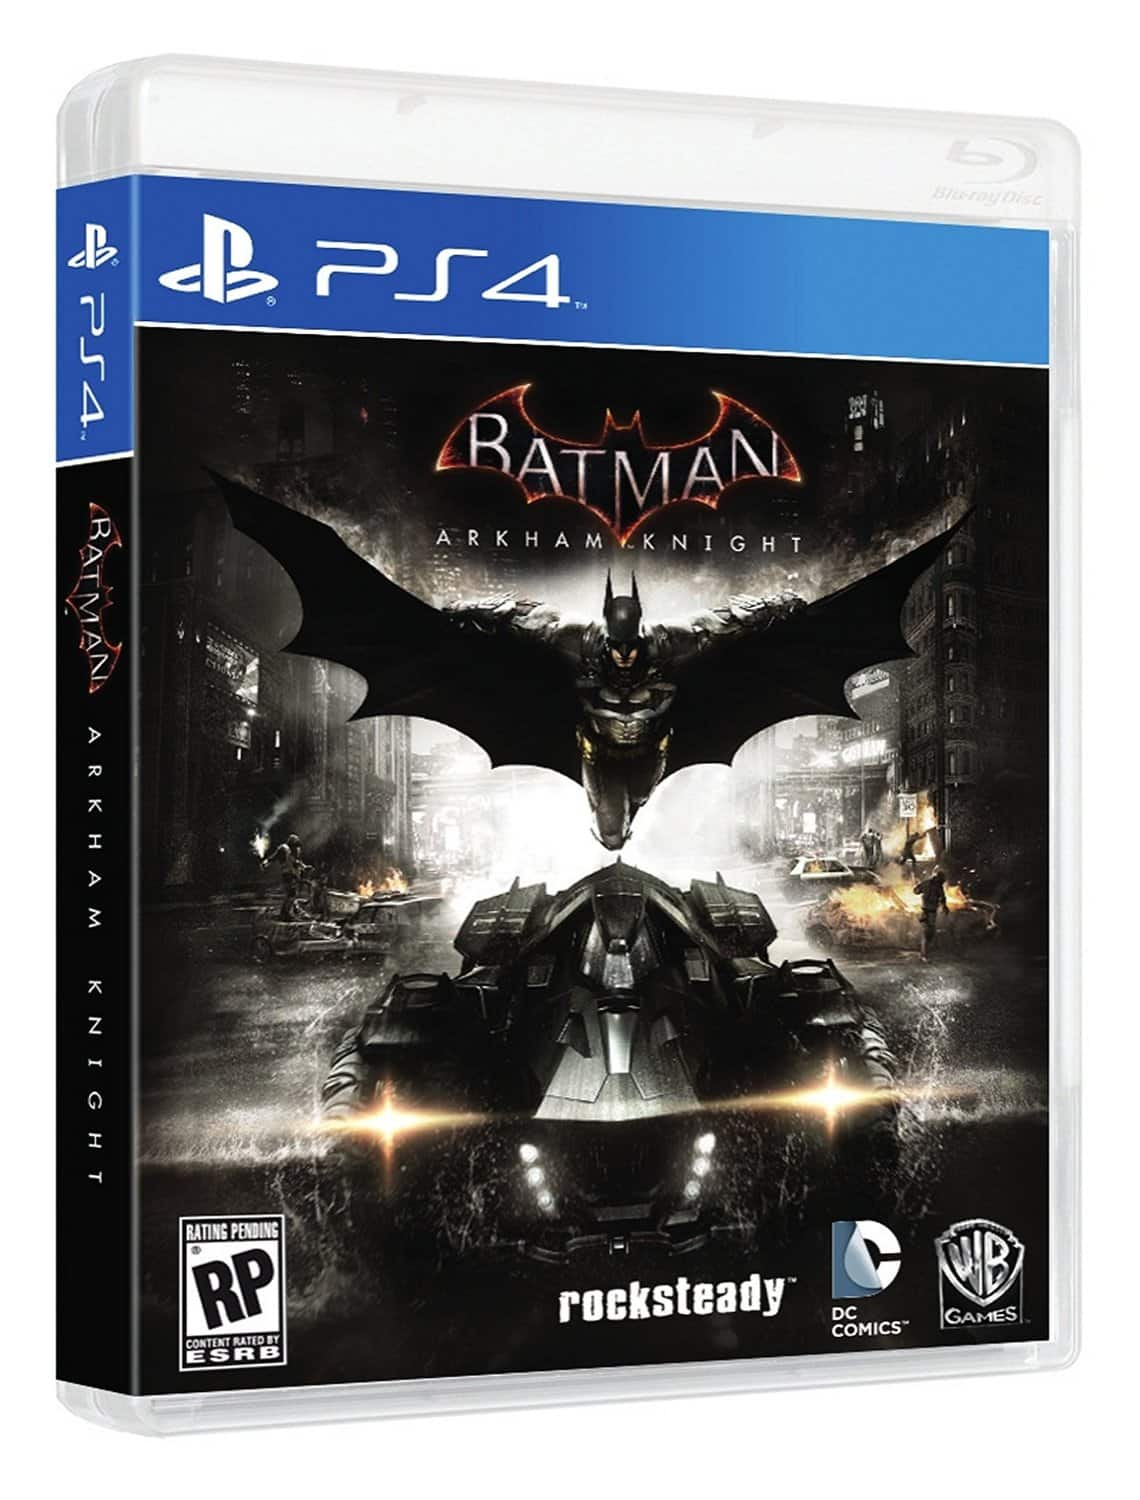 Batman Arkham Knight (PS4 or Xbox One)  $15 + Free In-Store Pickup